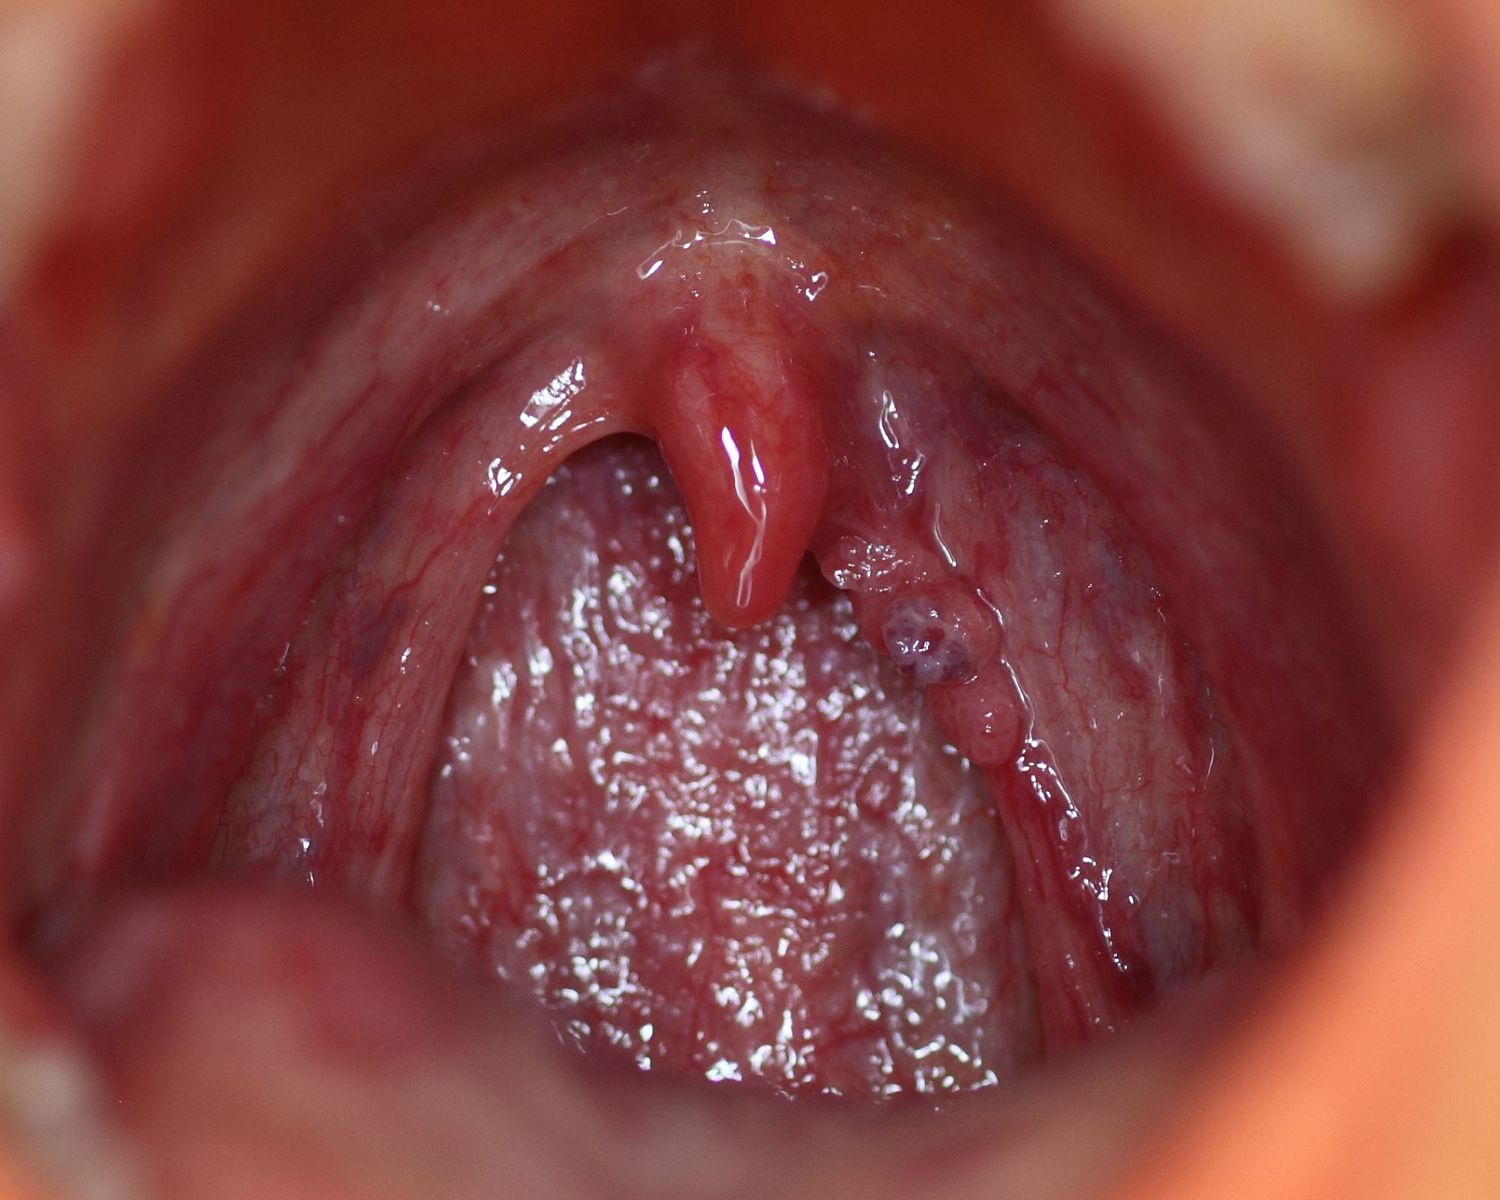 hpv virus in mouth)